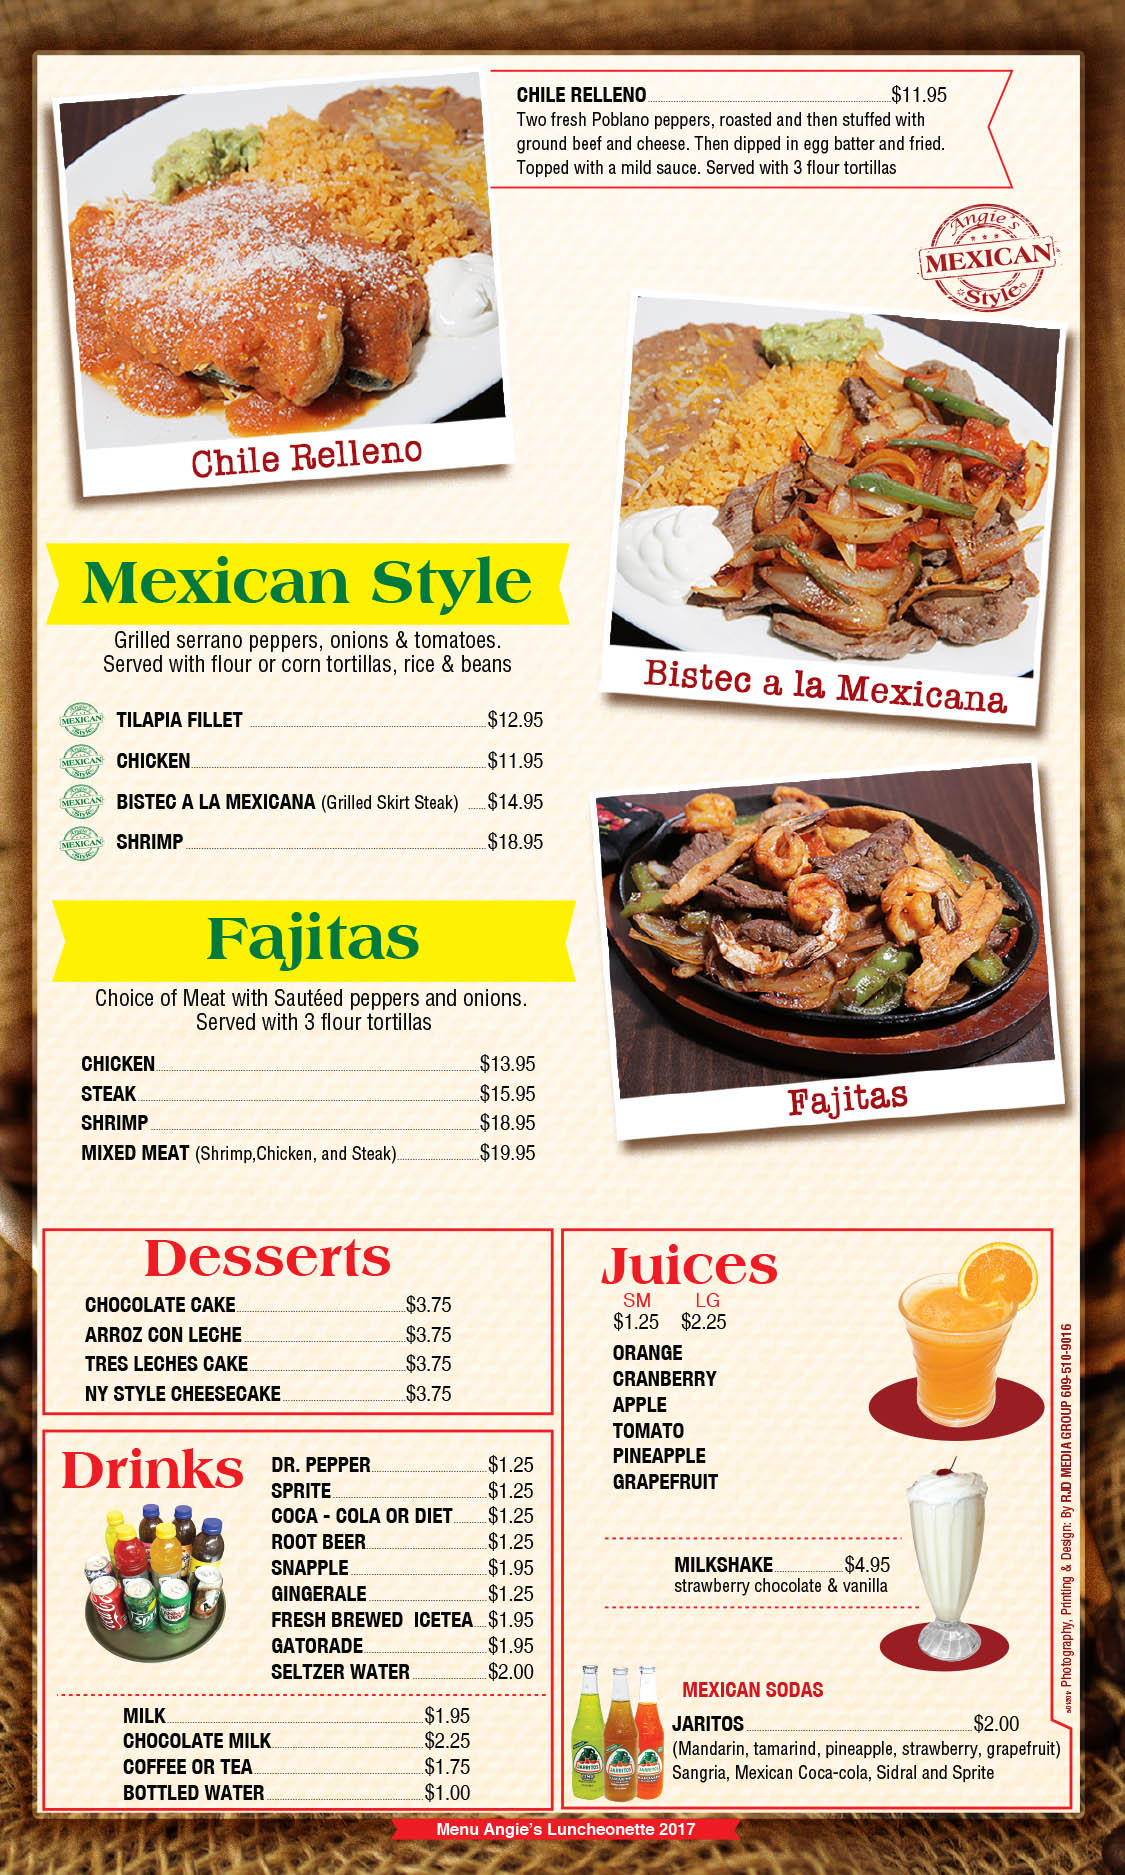 Angie's Luncheonette Menu Page 7